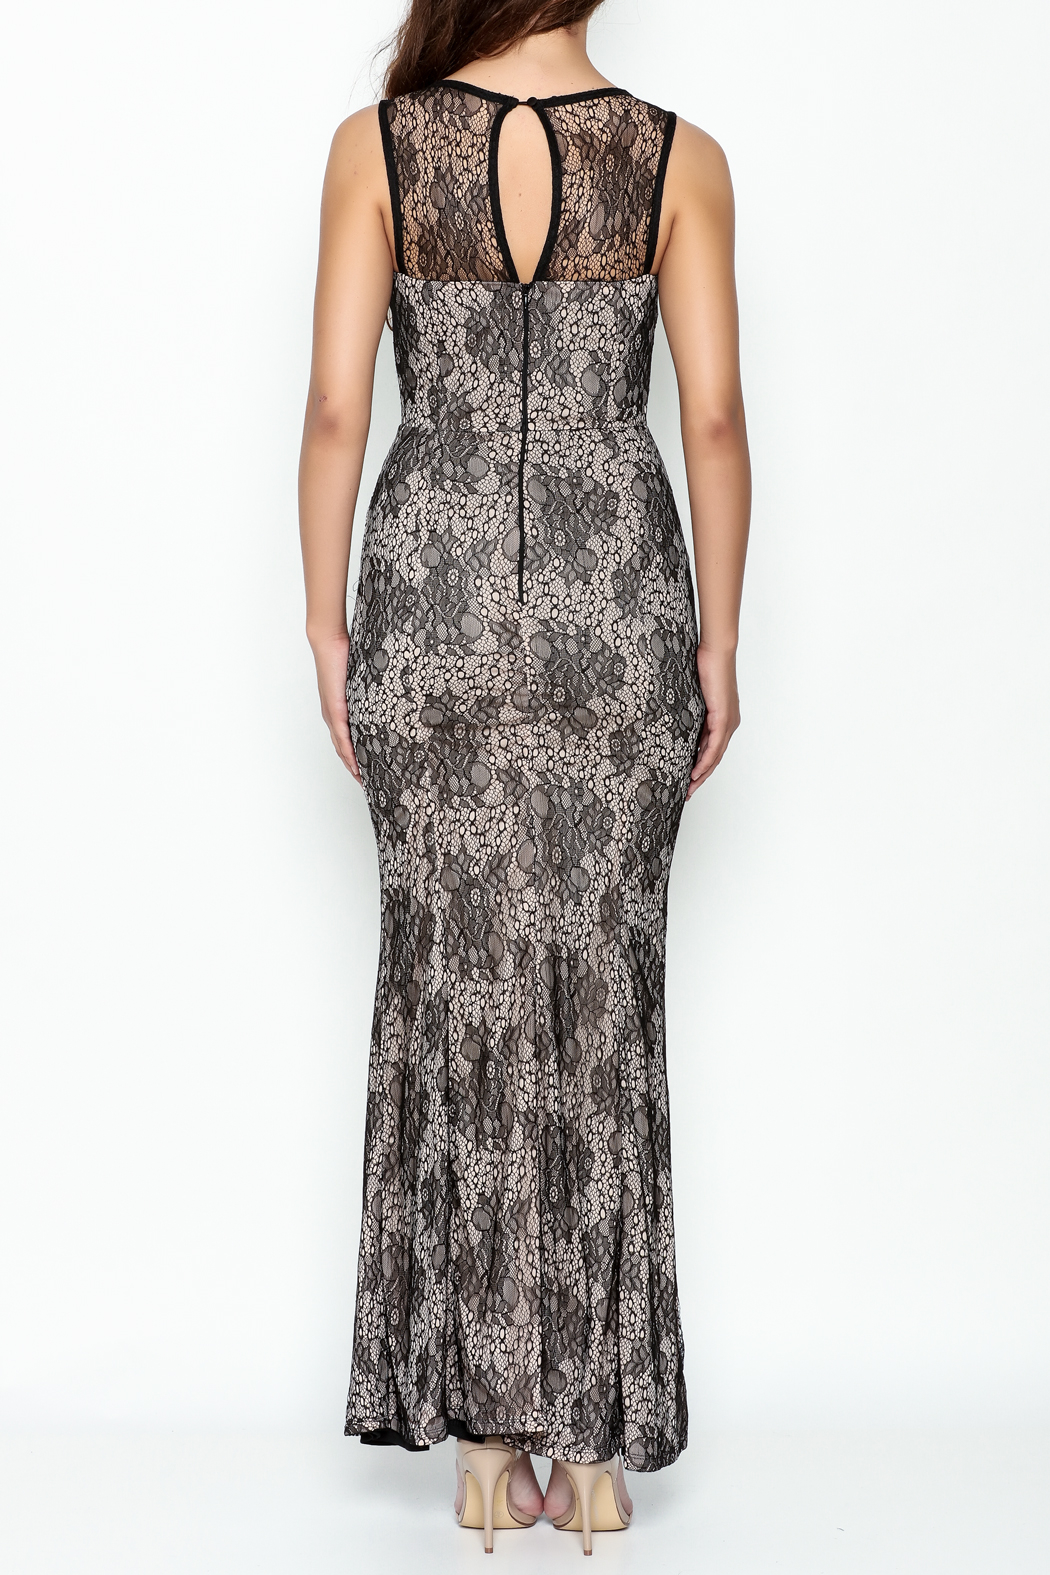 Nikibiki Long Lace Dress - Back Cropped Image